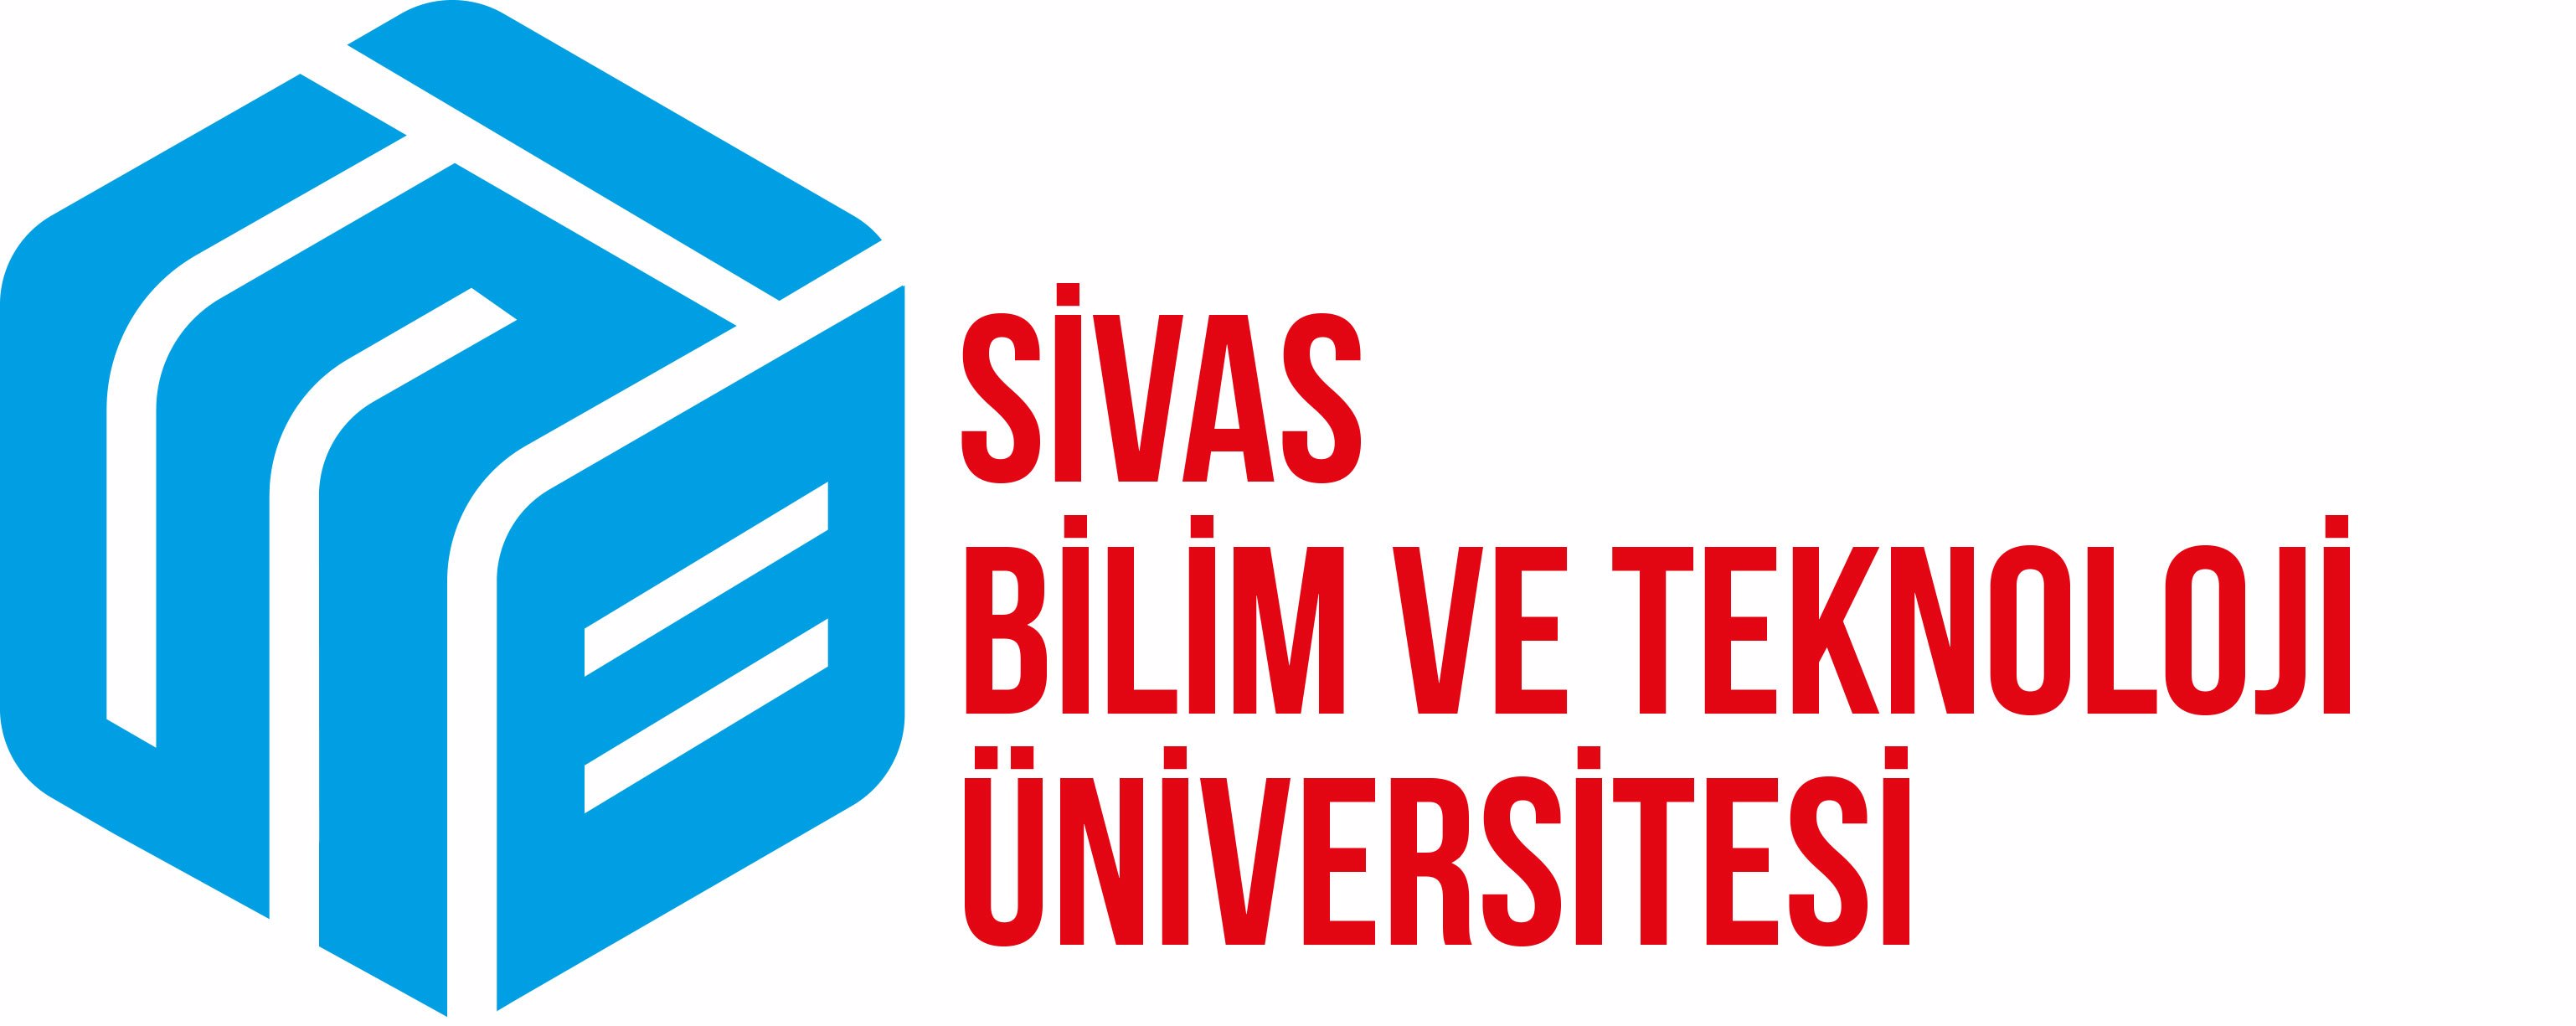 TUAS | SIVAS UNIVERSITY OF SCIENCE AND TECHNOLOGY